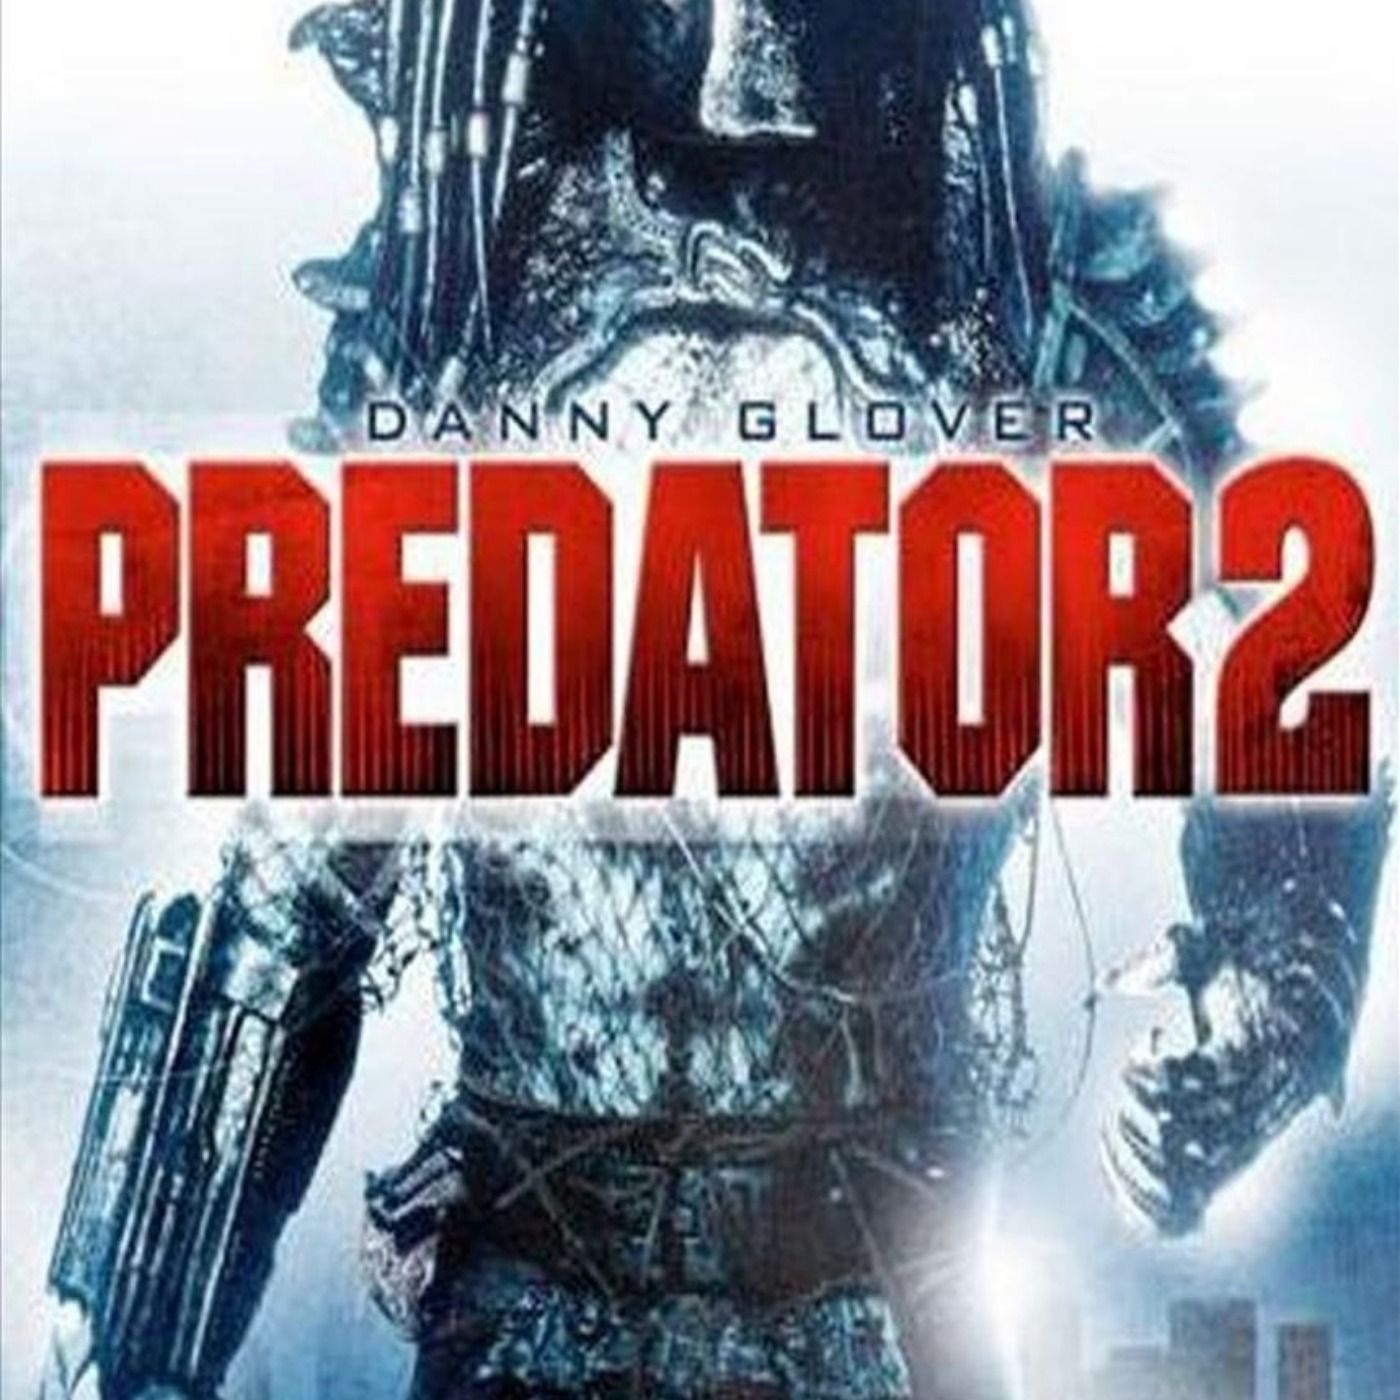 PODCAST CINEMA | CRITIQUE DU FILM Predator 2 - CinéMaRadio